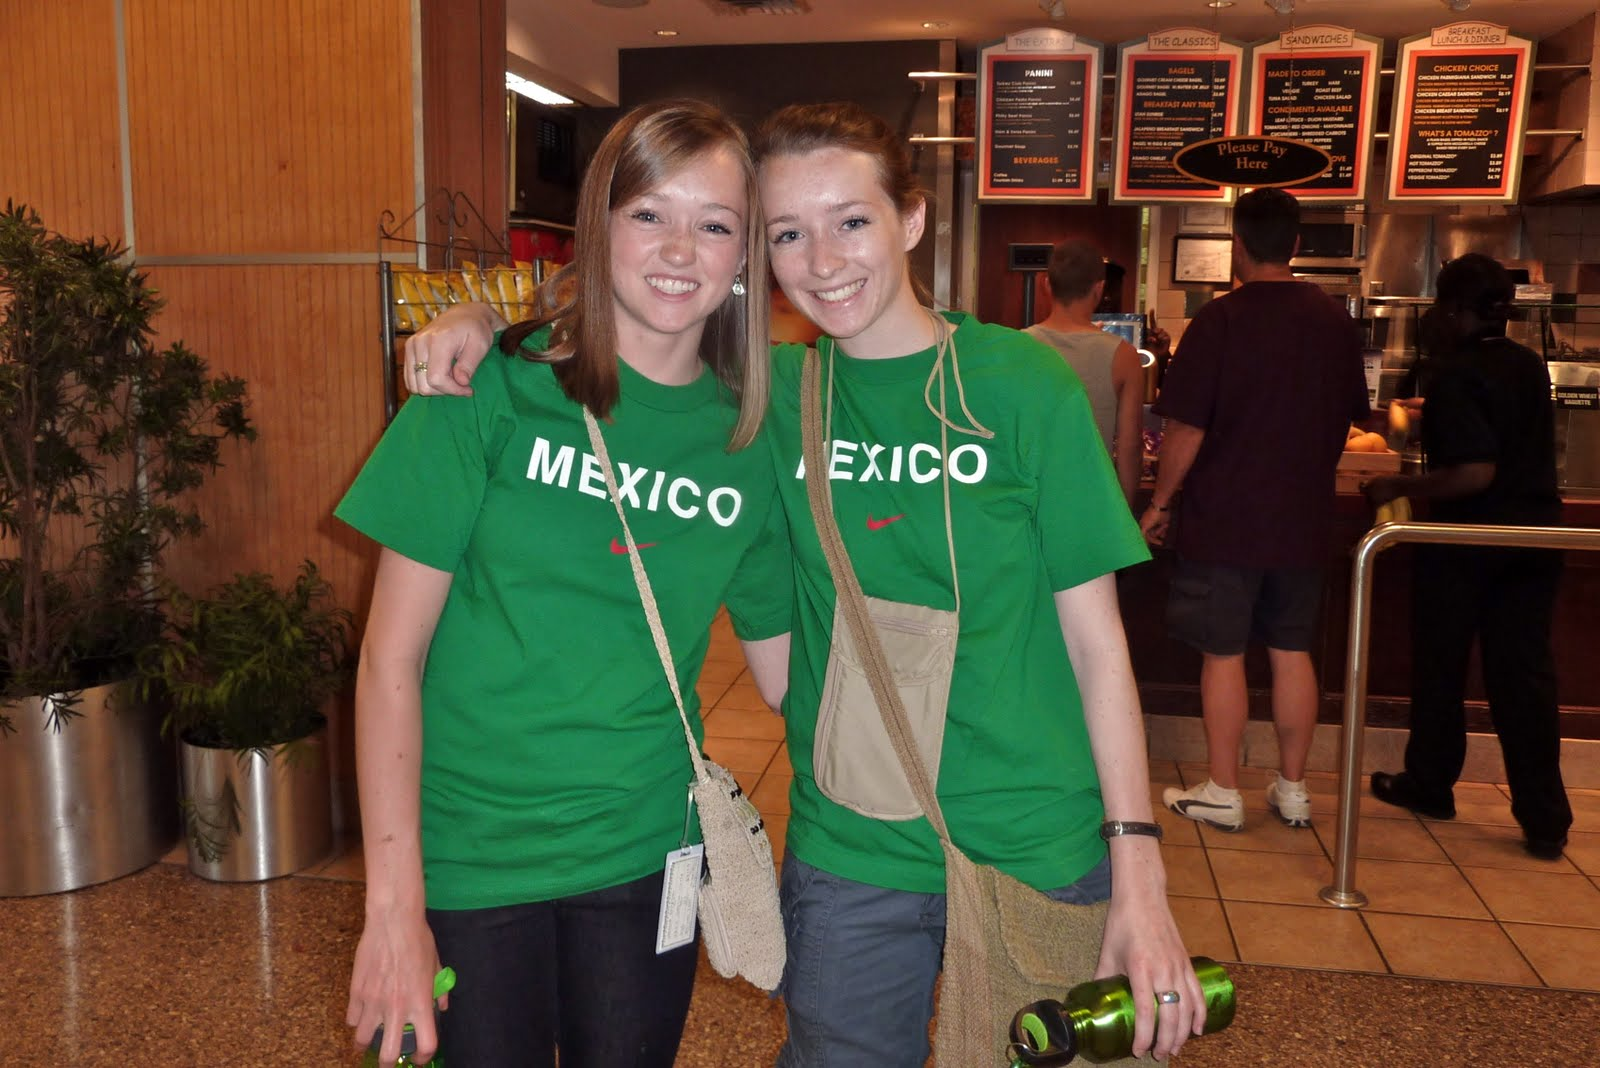 enessa and Tiffani (our alumni leader) They totally look like twins, but they're just sisters. Tiffani went to Peru on her Youthlinc trip. She'a fluent Spanish speaker and we all love her!